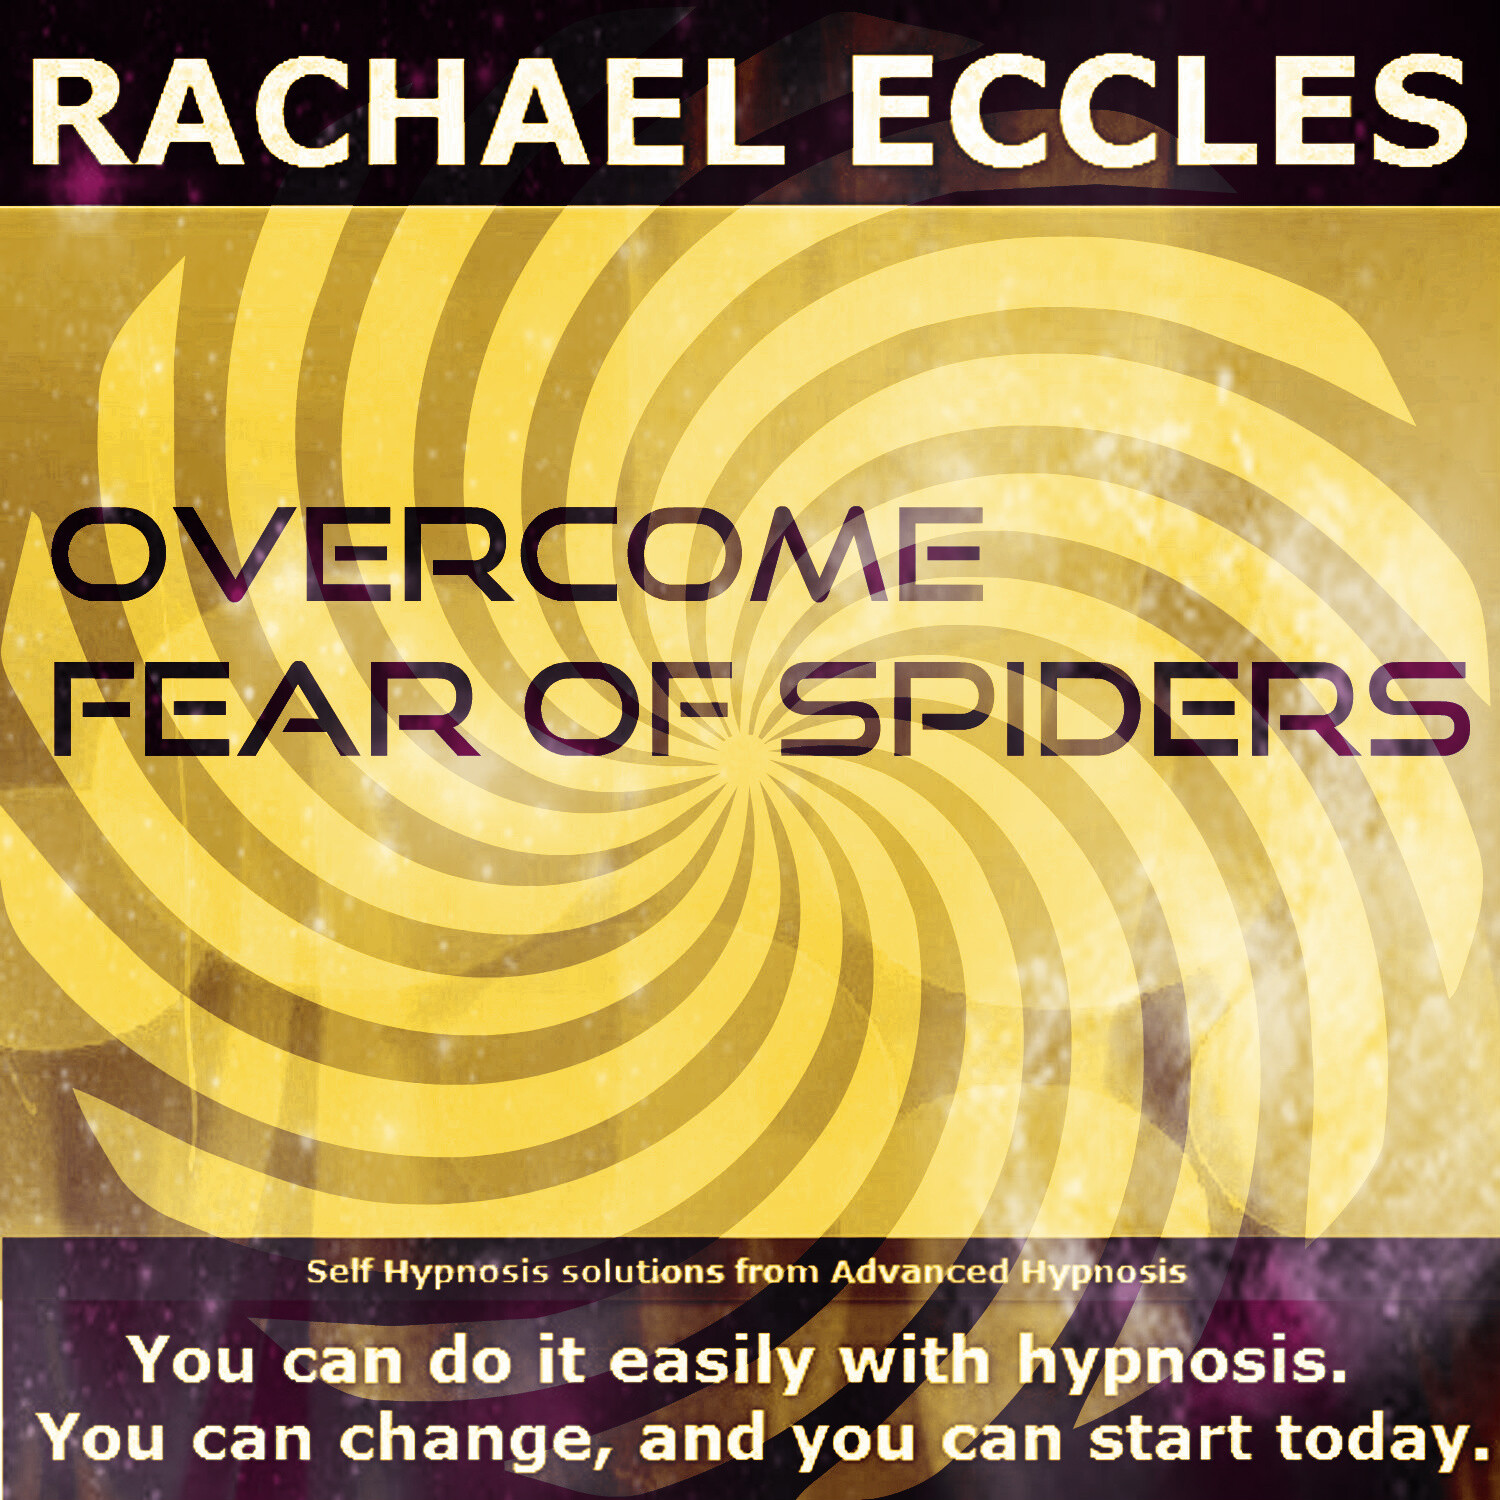 Overcome Fear of Spiders Hypnosis CD, Arachnophobia Hypnotherapy